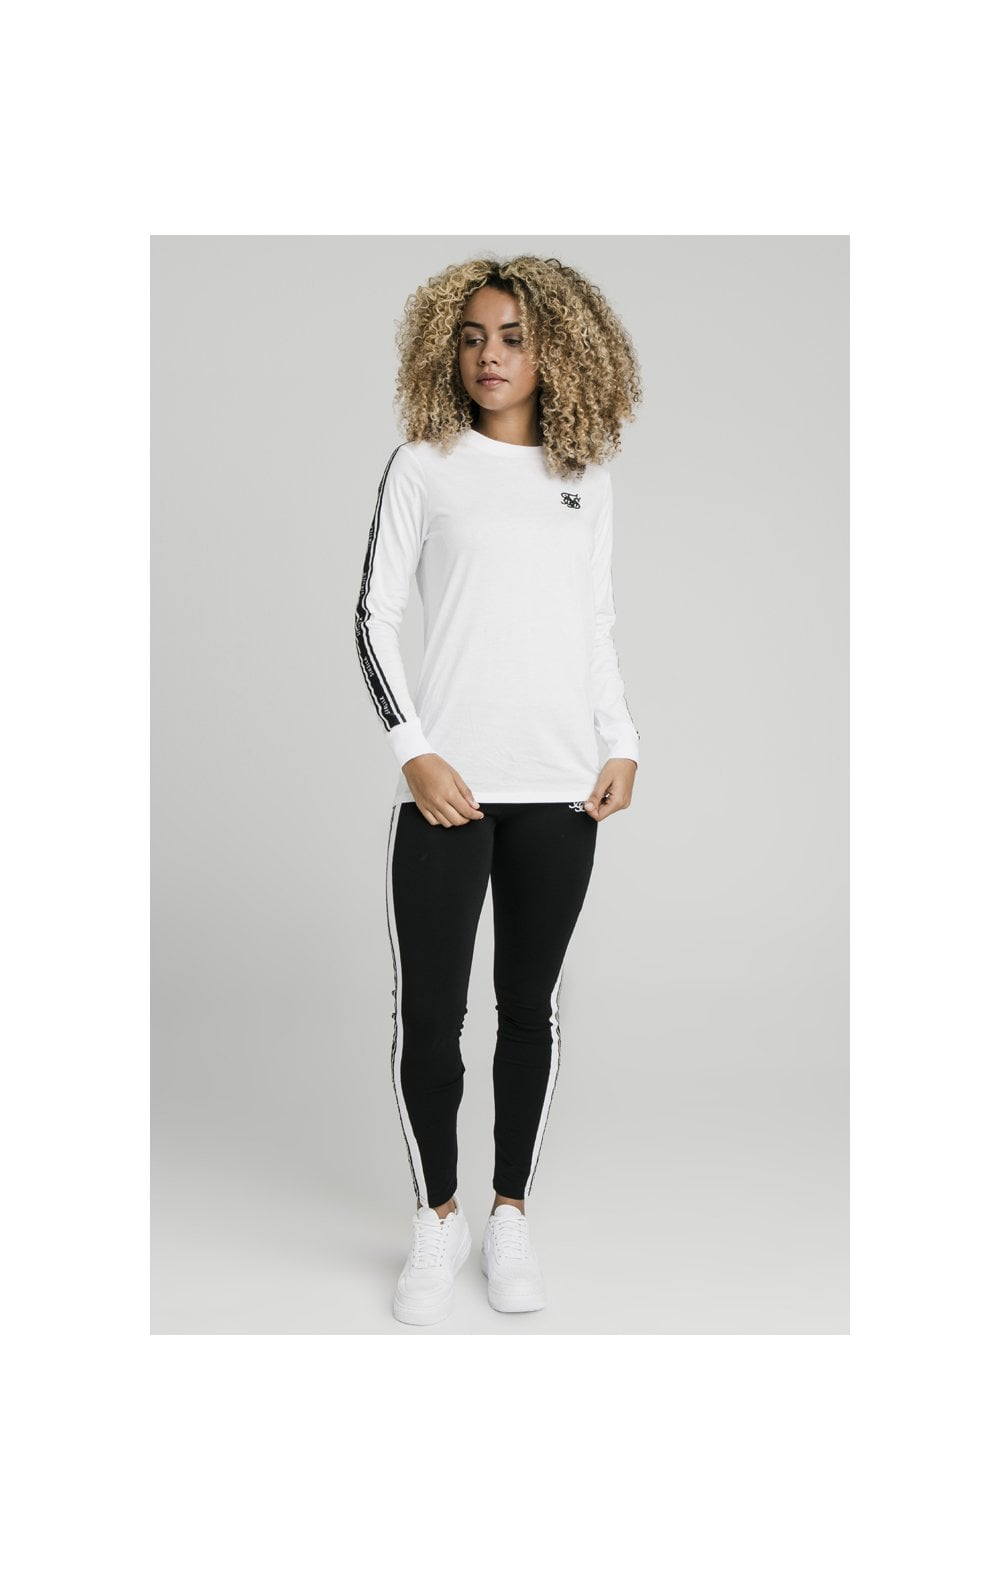 Load image into Gallery viewer, SikSilk L/S Taped Logo Tee - Black & White (4)